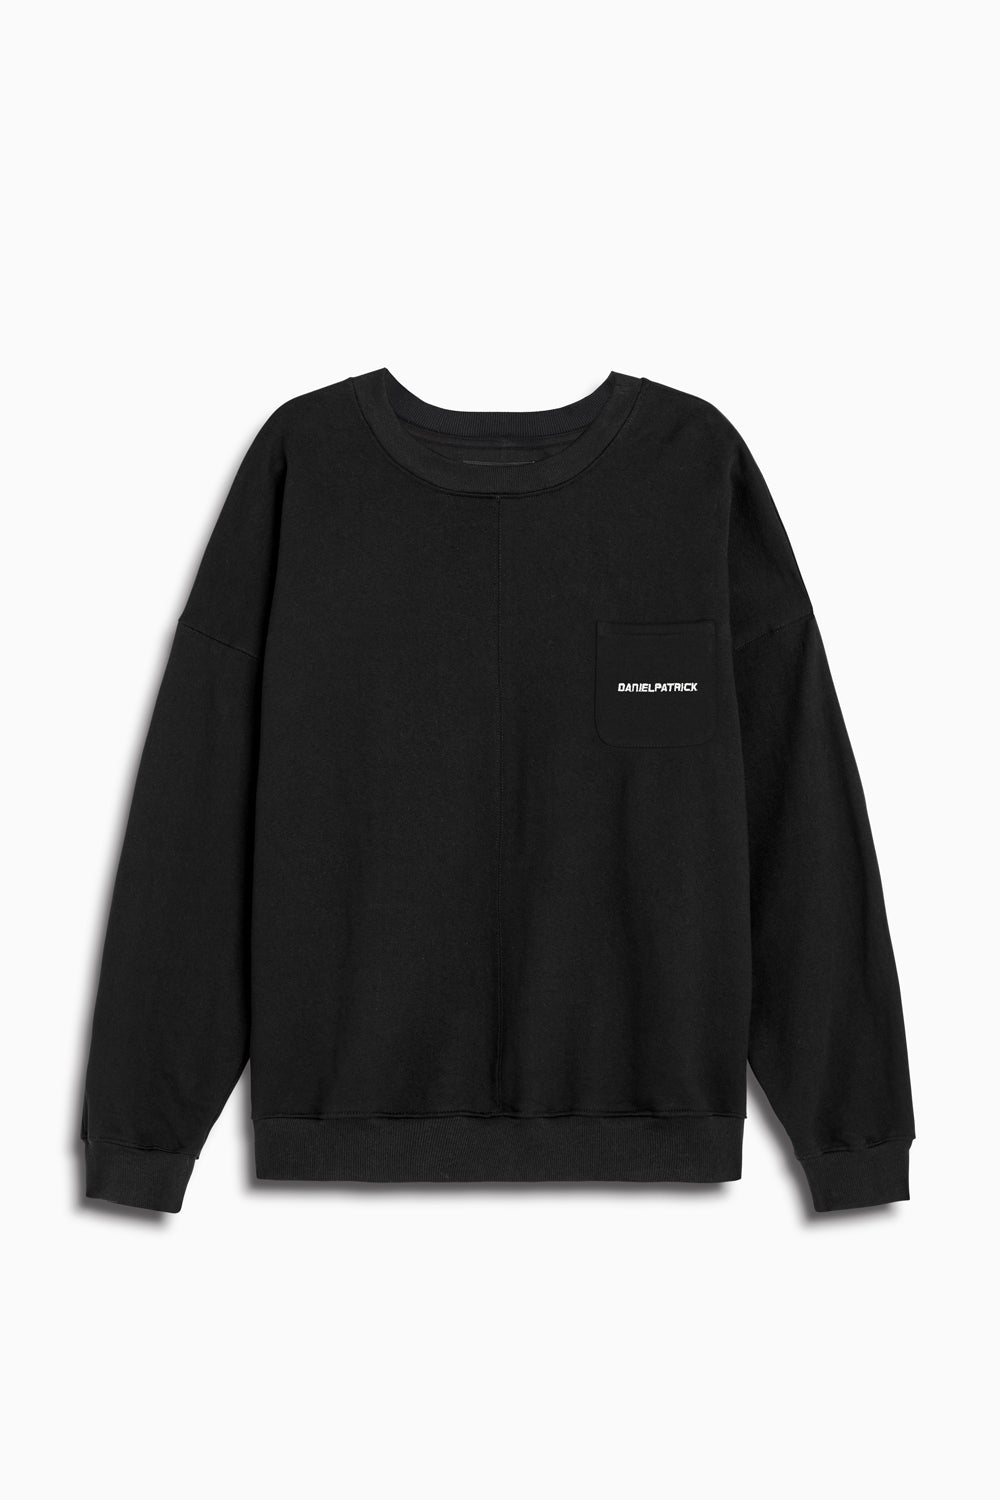 pocket crew sweat ii in black/ivory by daniel patrick